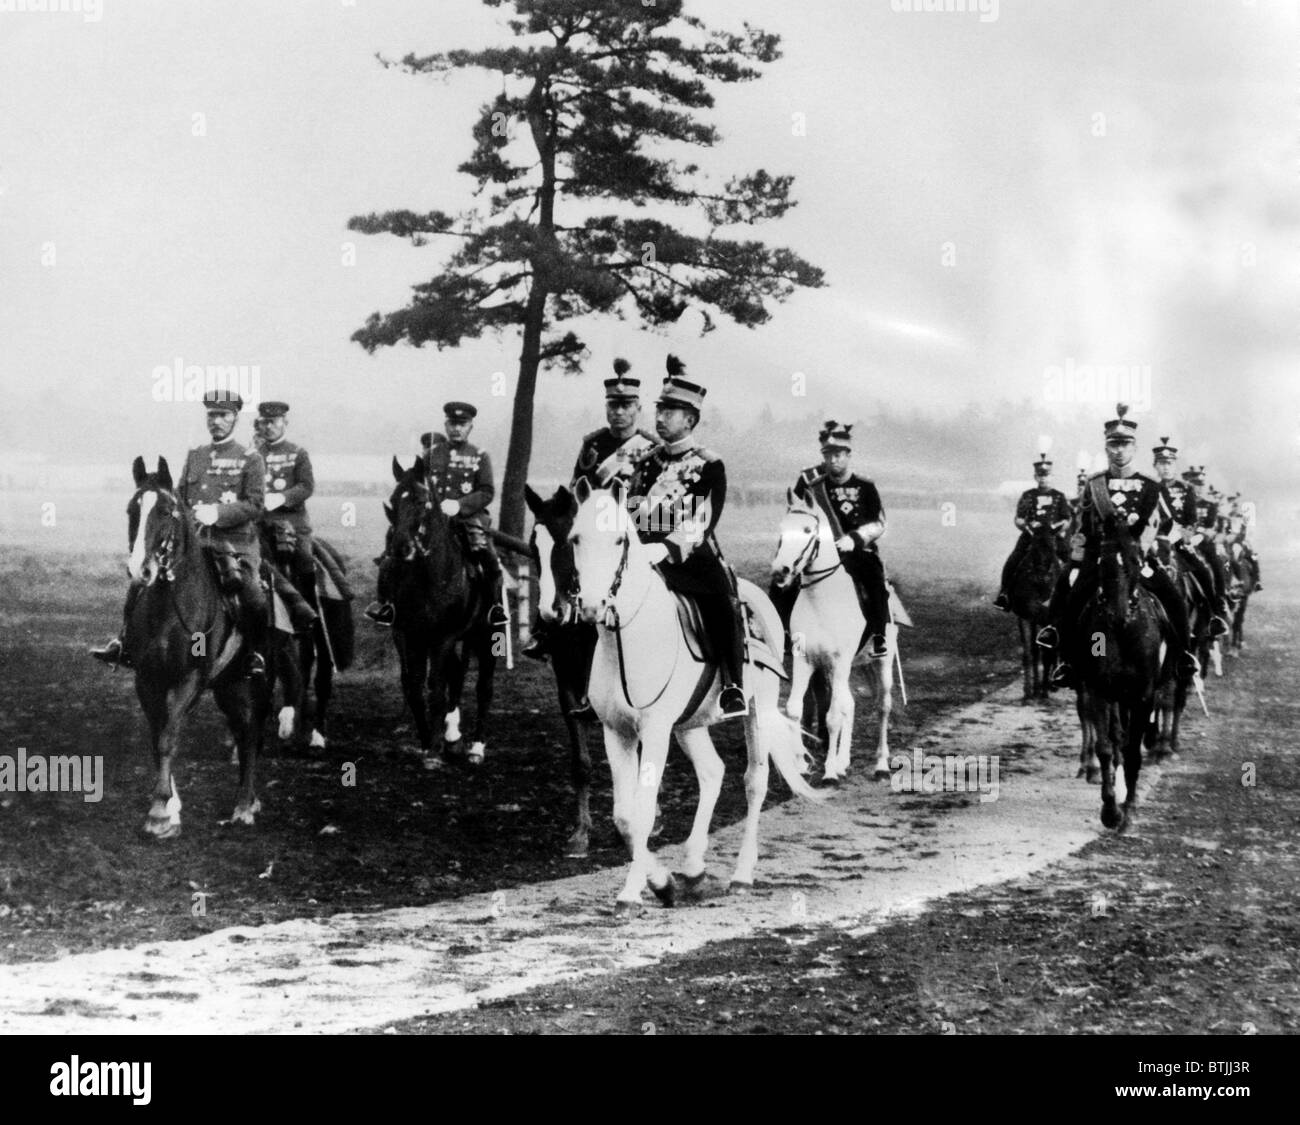 Emperor Hirohito, accompanied by members of his military suite, reviews his troops in Tokyo. ca. 1936. Courtesy: - Stock Image